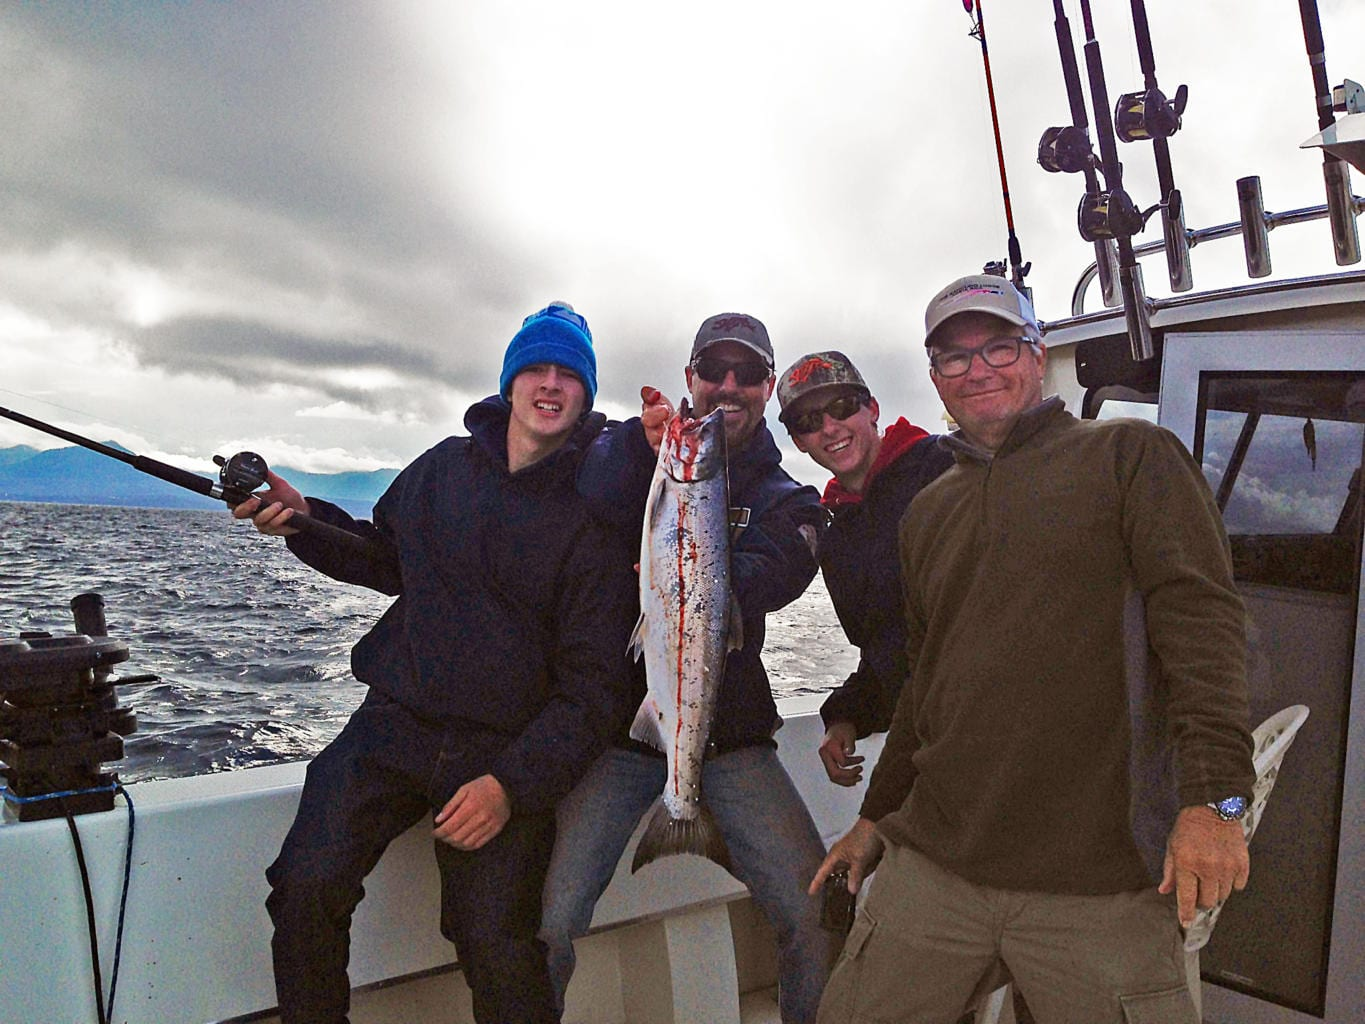 Fishing in Ketchikan Alaska August, 8th 2014 with Oasis Alaska Charter Fishing